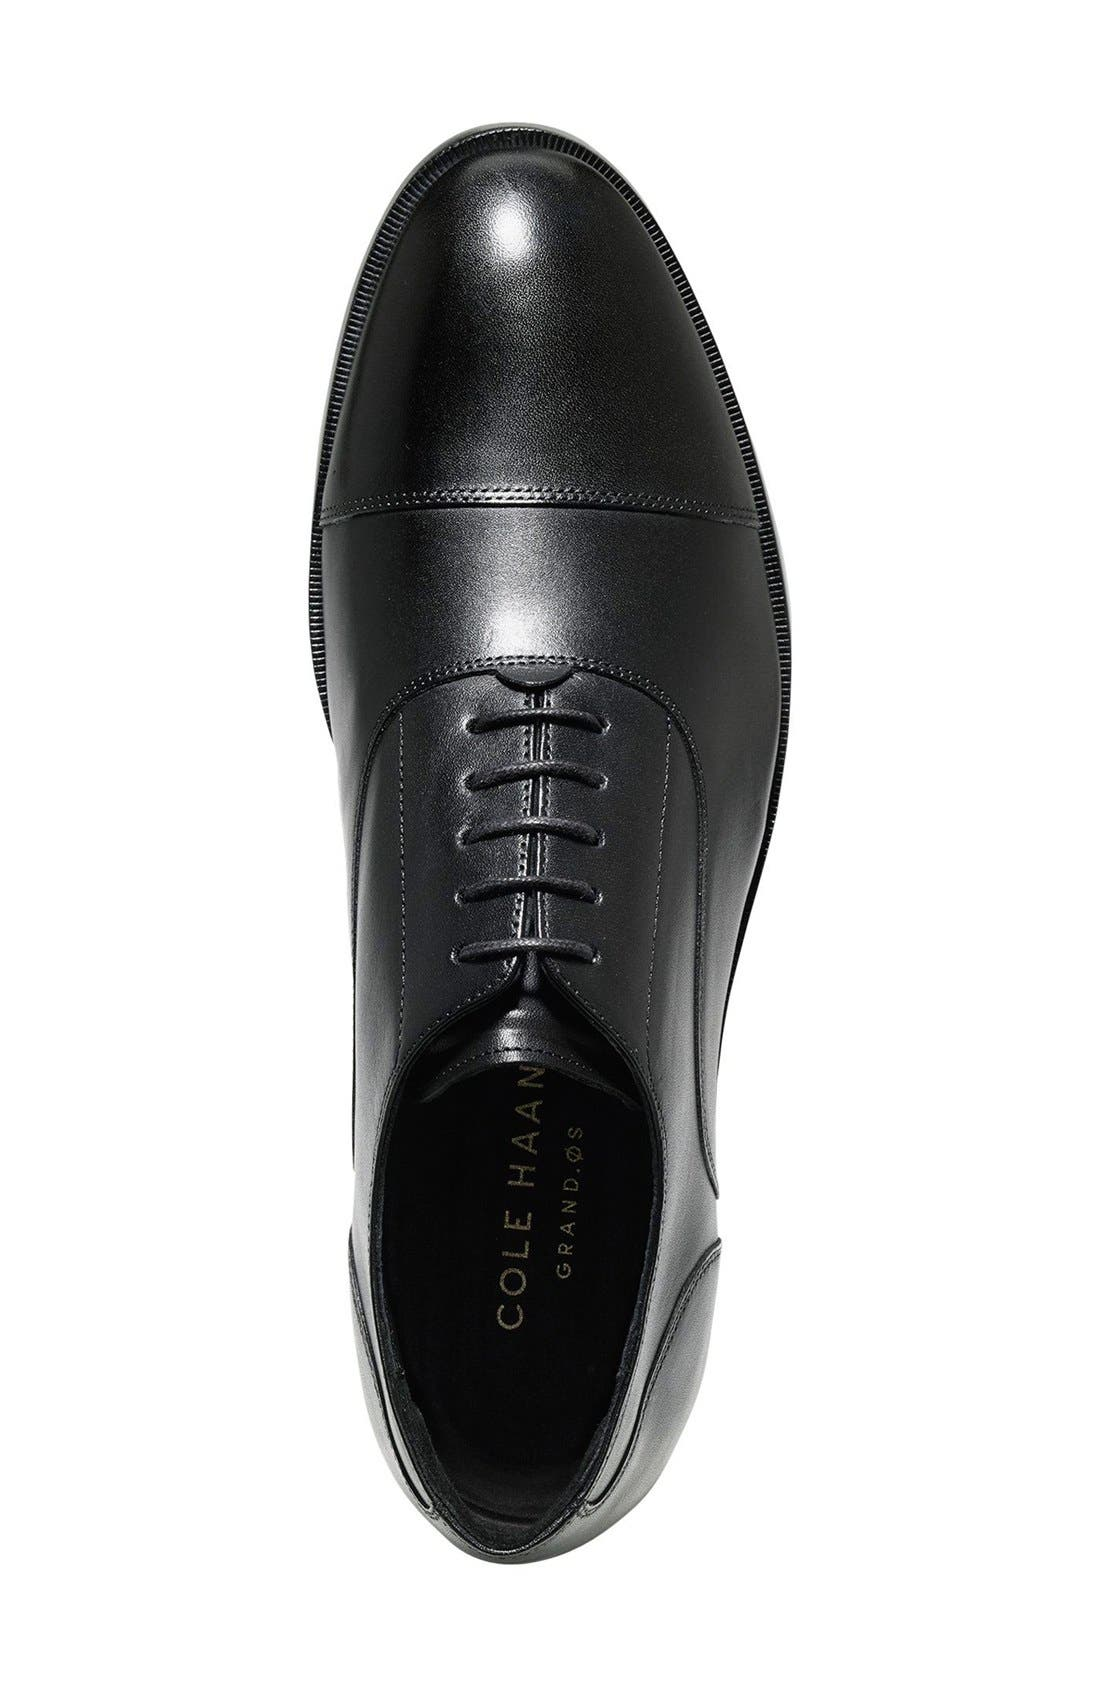 COLE HAAN, Harrison Grand Cap Toe Oxford, Alternate thumbnail 8, color, BLACK/ BLACK LEATHER